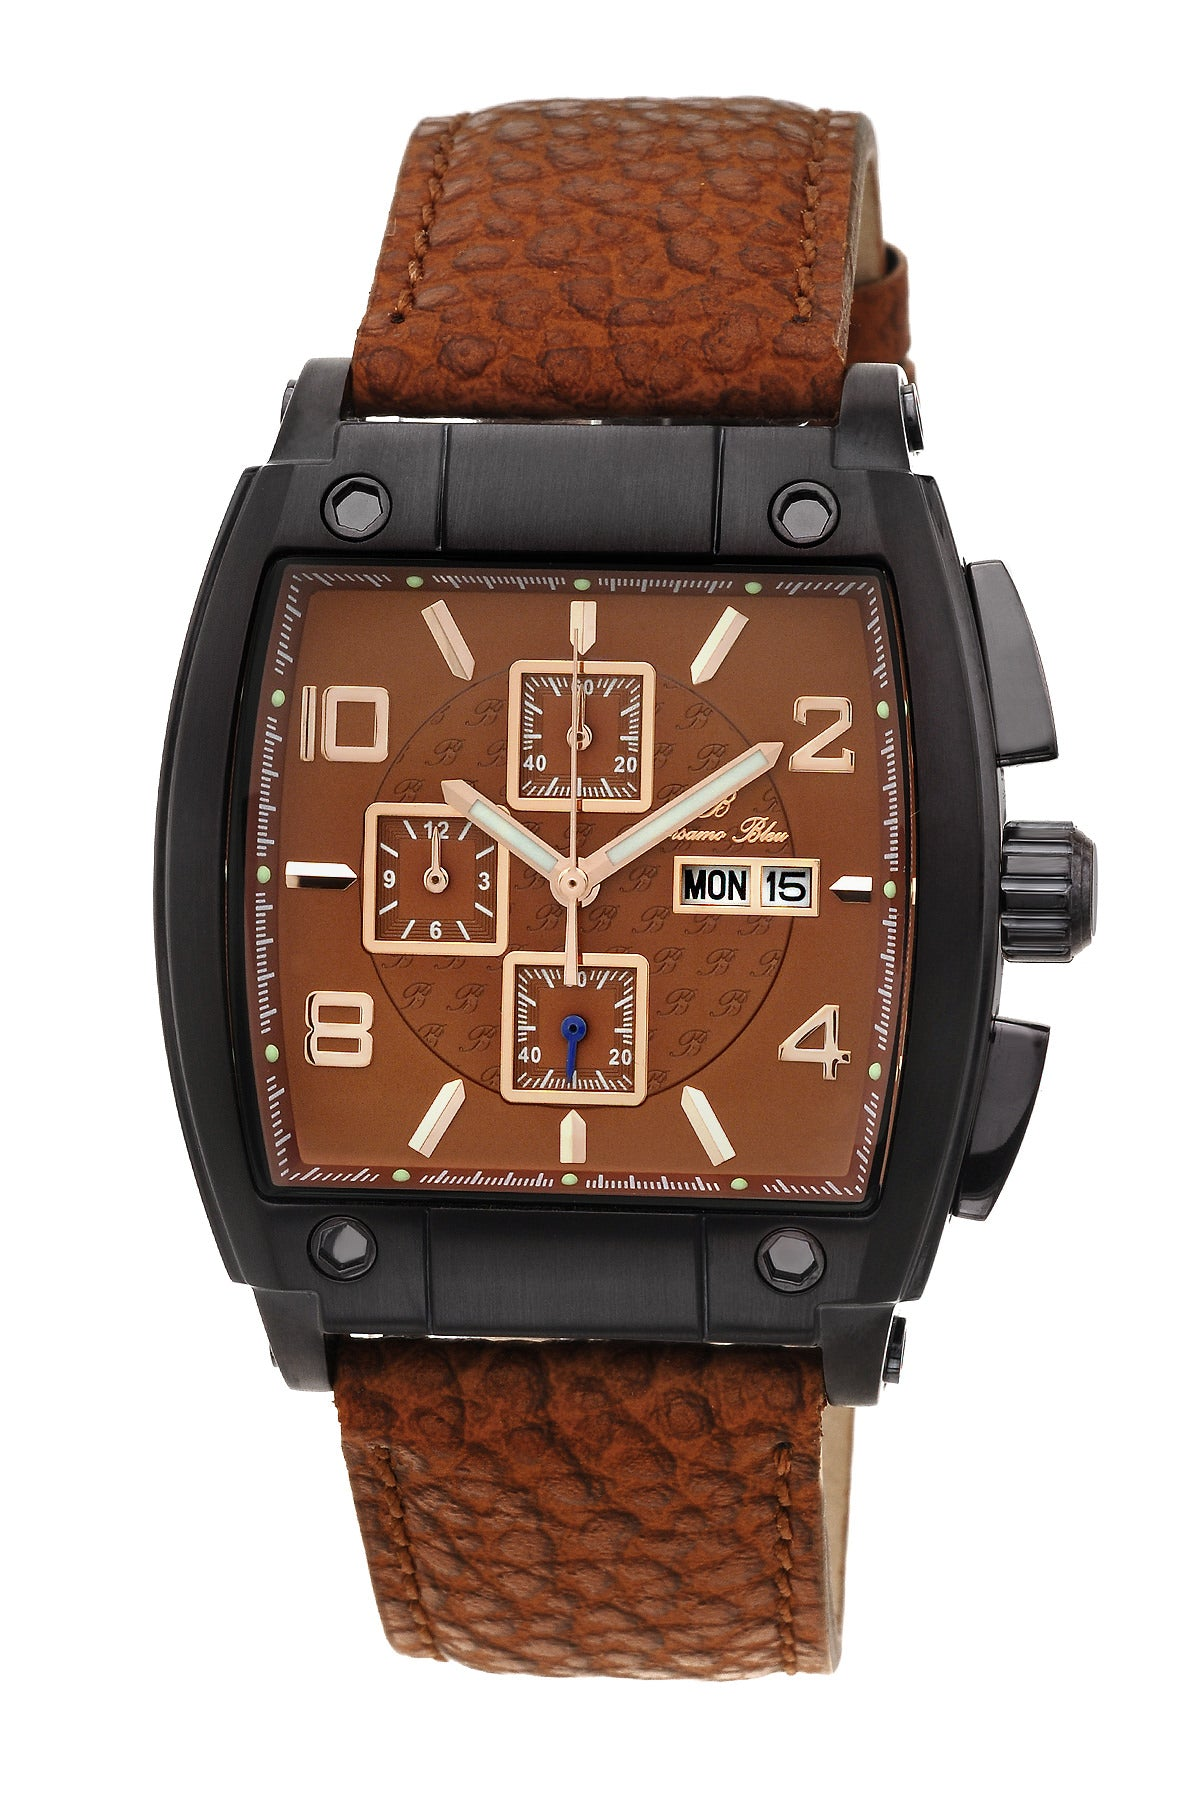 Porsamo Bleu London luxury chronograph men's watch, genuine leather band, black, brown 142DLOL